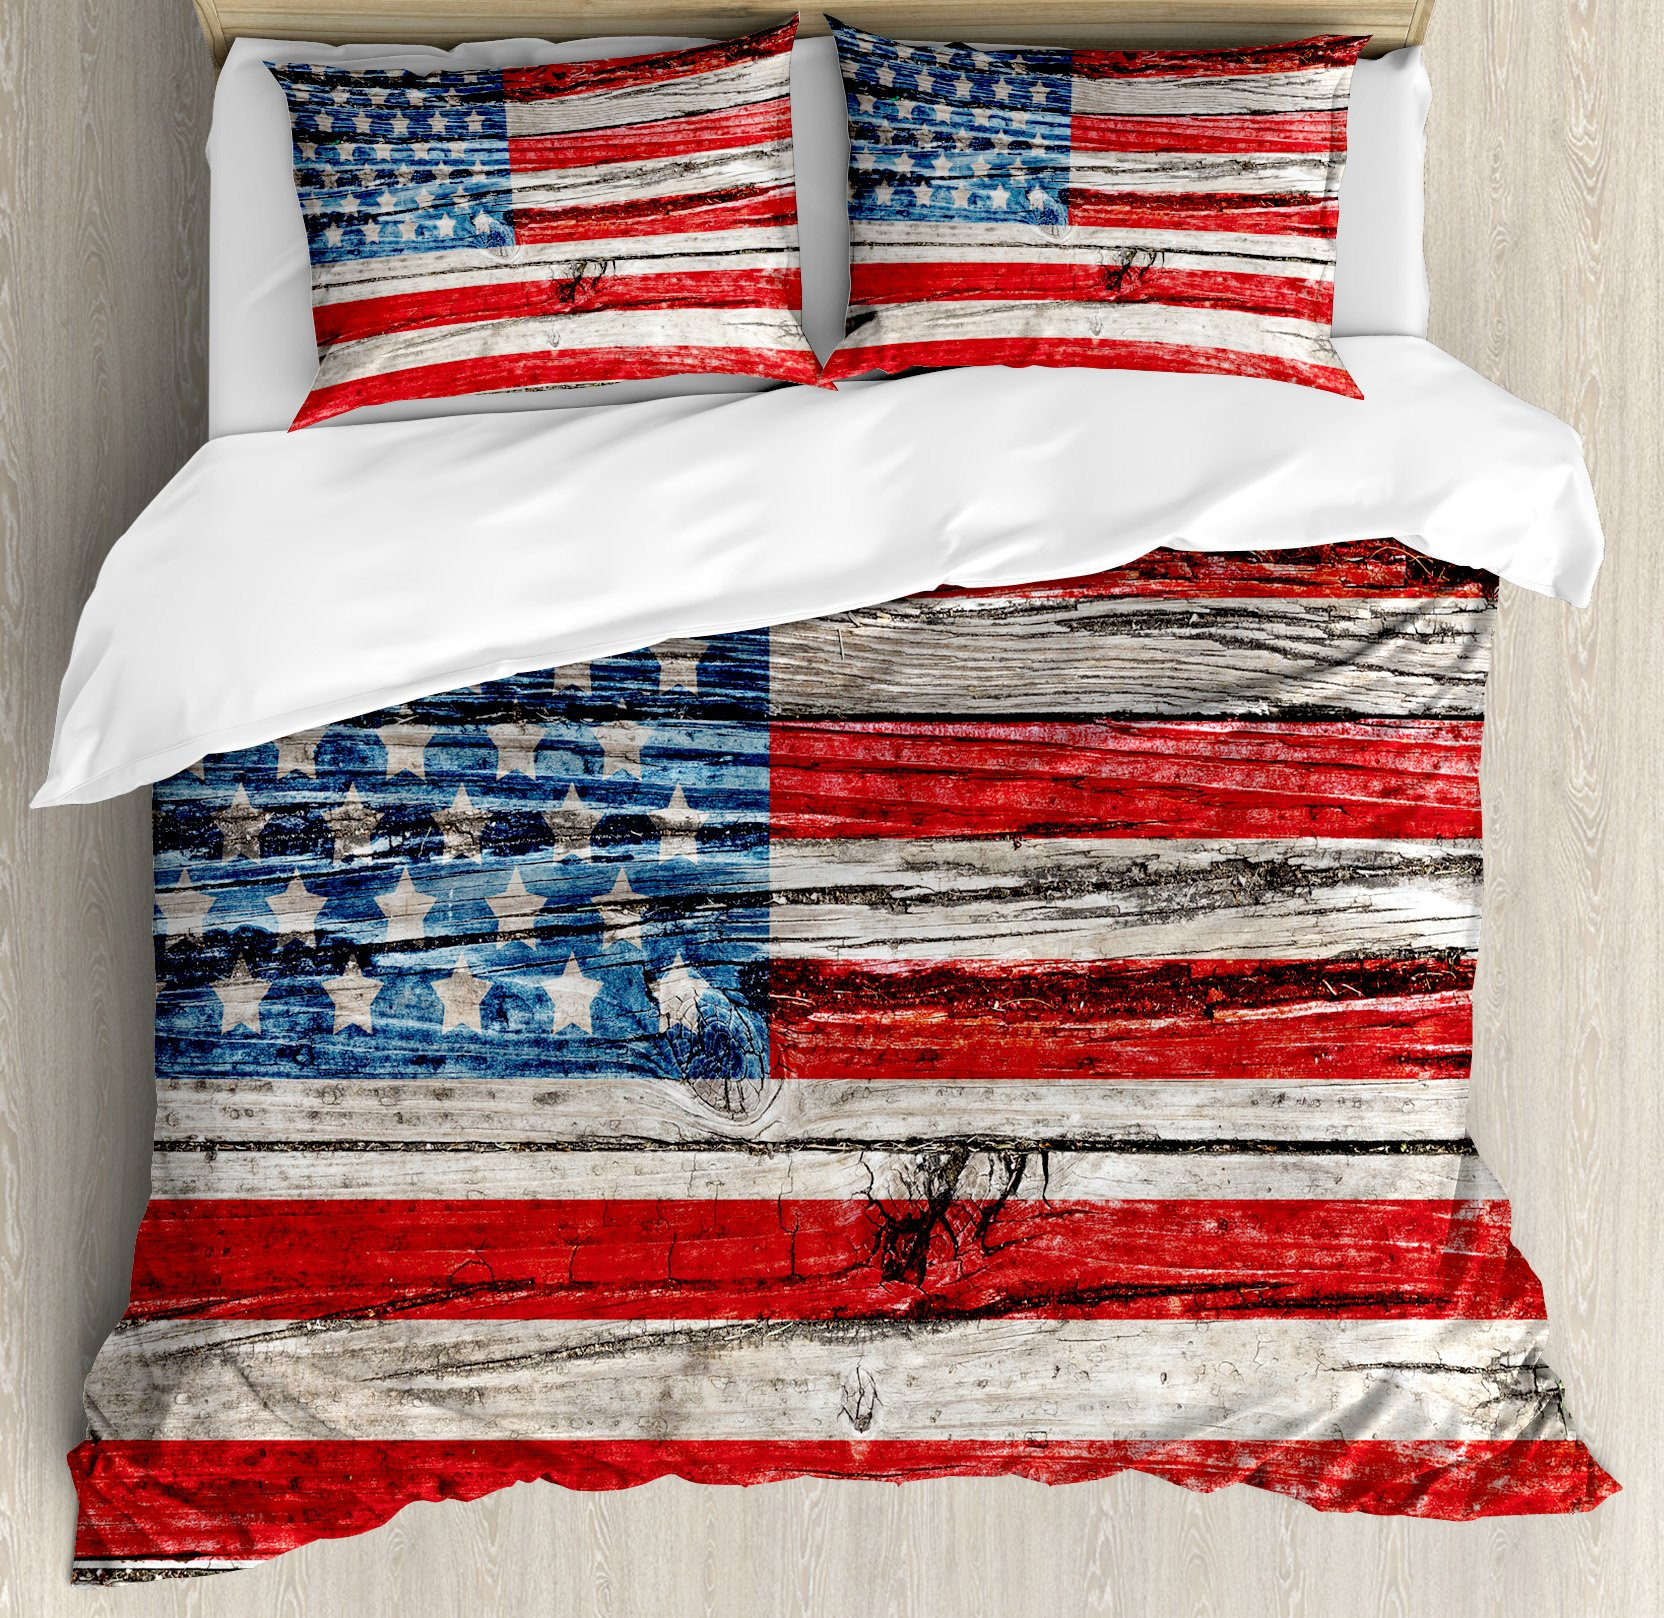 Rustic American USA Flag King Size Duvet Cover Set by Ambesonne, Fourth of July Independence Day Painted Wooden panel Wall Looking Image Freedom, Decorative 3 Piece Bedding Set with 2 Pillow Shams